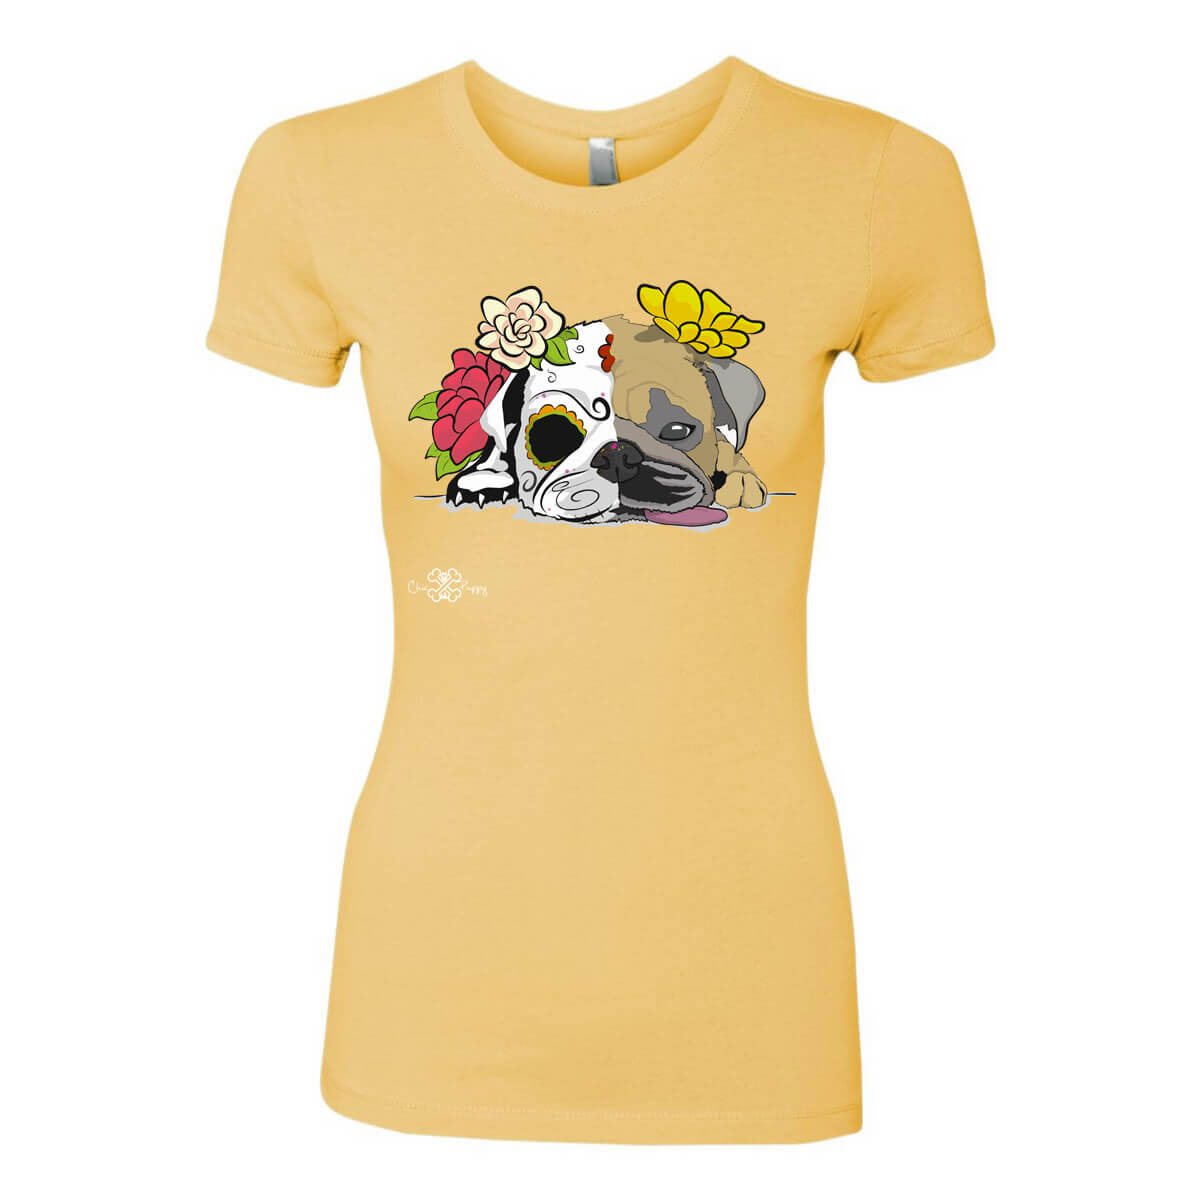 Matching Dog and Owner - Dia De Los Muertos Pug - Women Shirts - Women